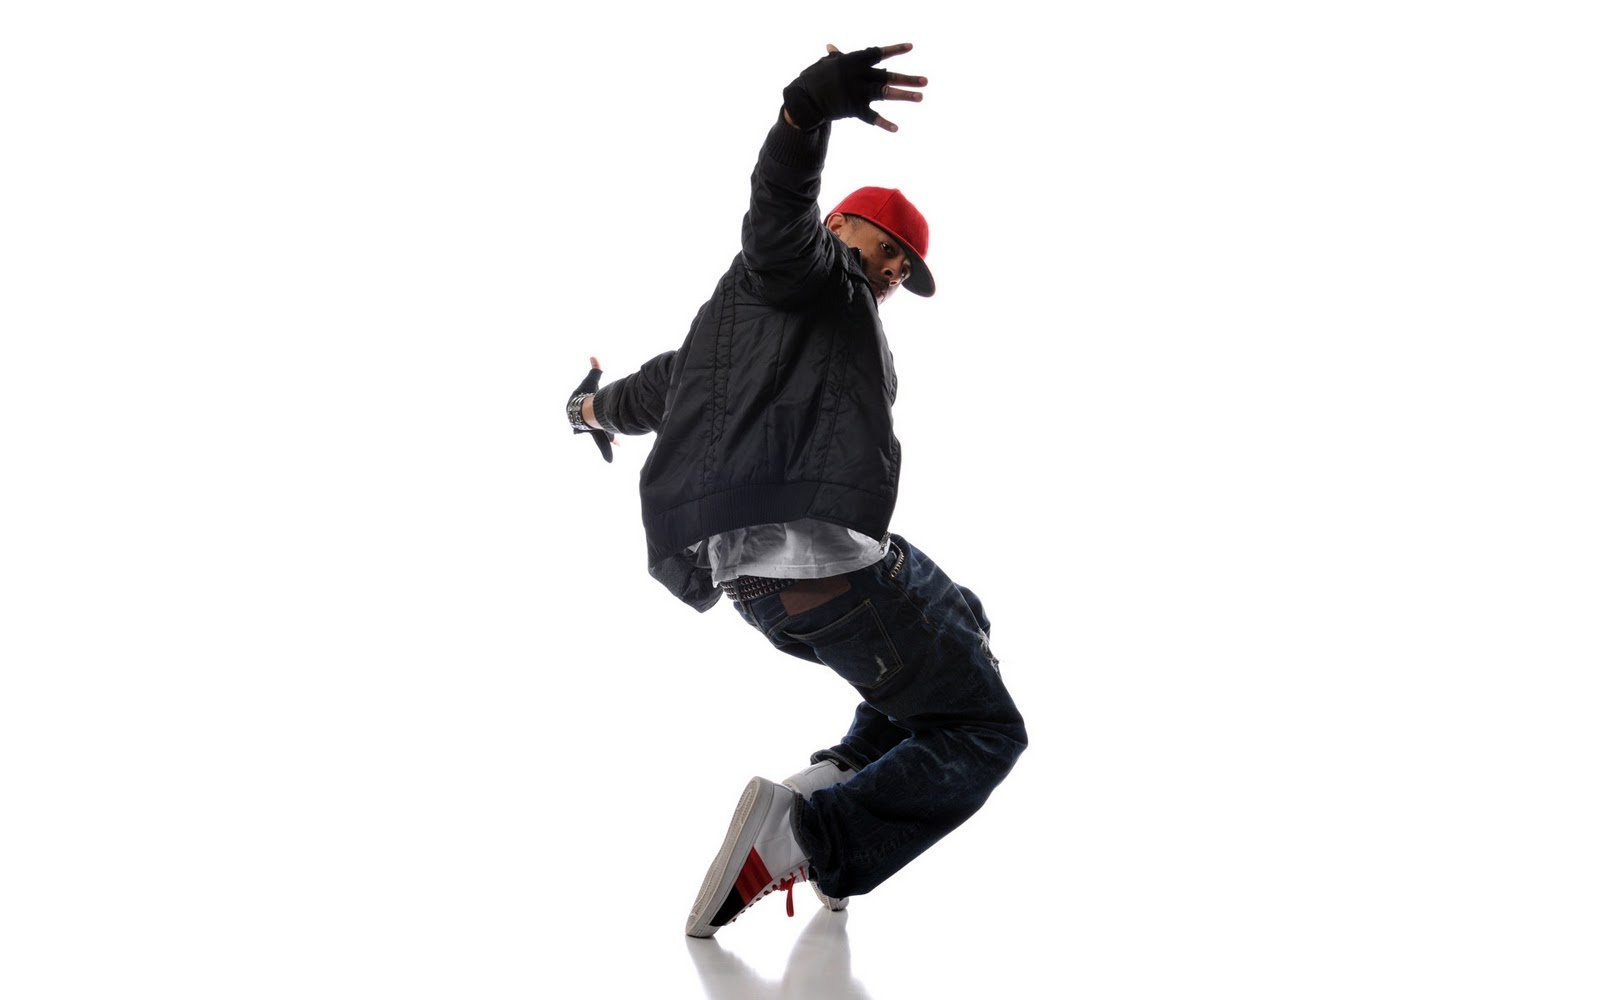 hip hop wallpapership hop wallpaperhip hop dance styleship hop 1600x1000